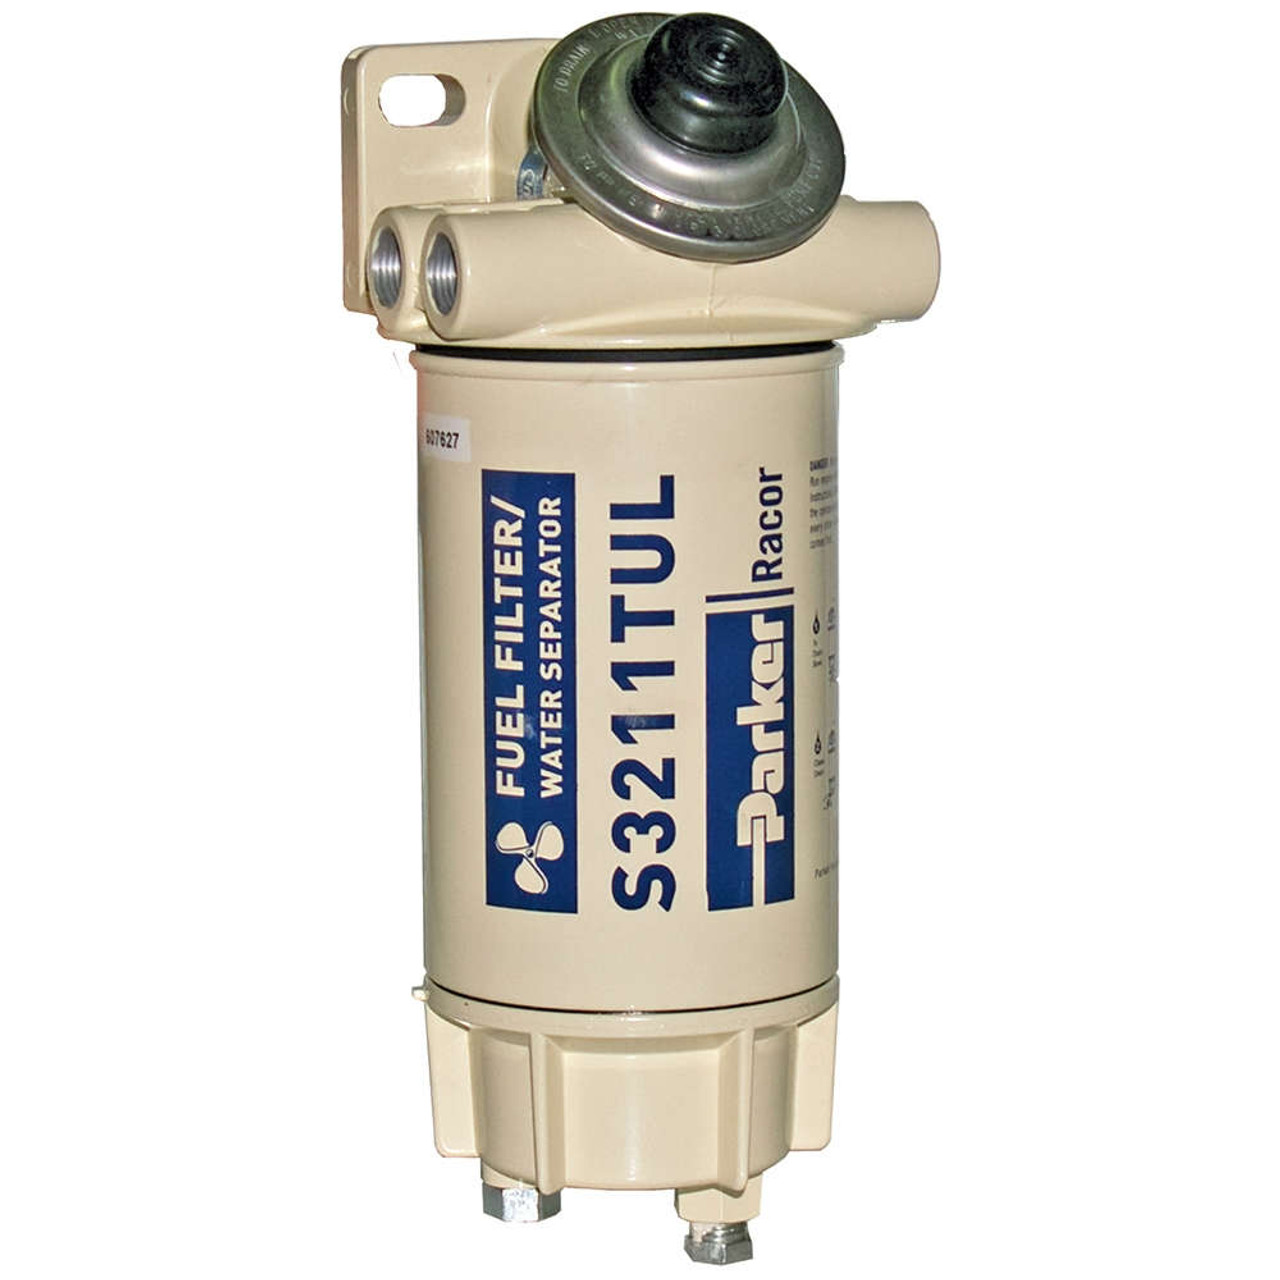 Racor Aquabloc Marine 3/8 in. 60 GPH Spin-On Diesel Fuel Filter Water  Separator Assembly - 6 Qty - John M. Ellsworth Co. Inc.   Spin On Fuel Filter Assembly      Jmesales